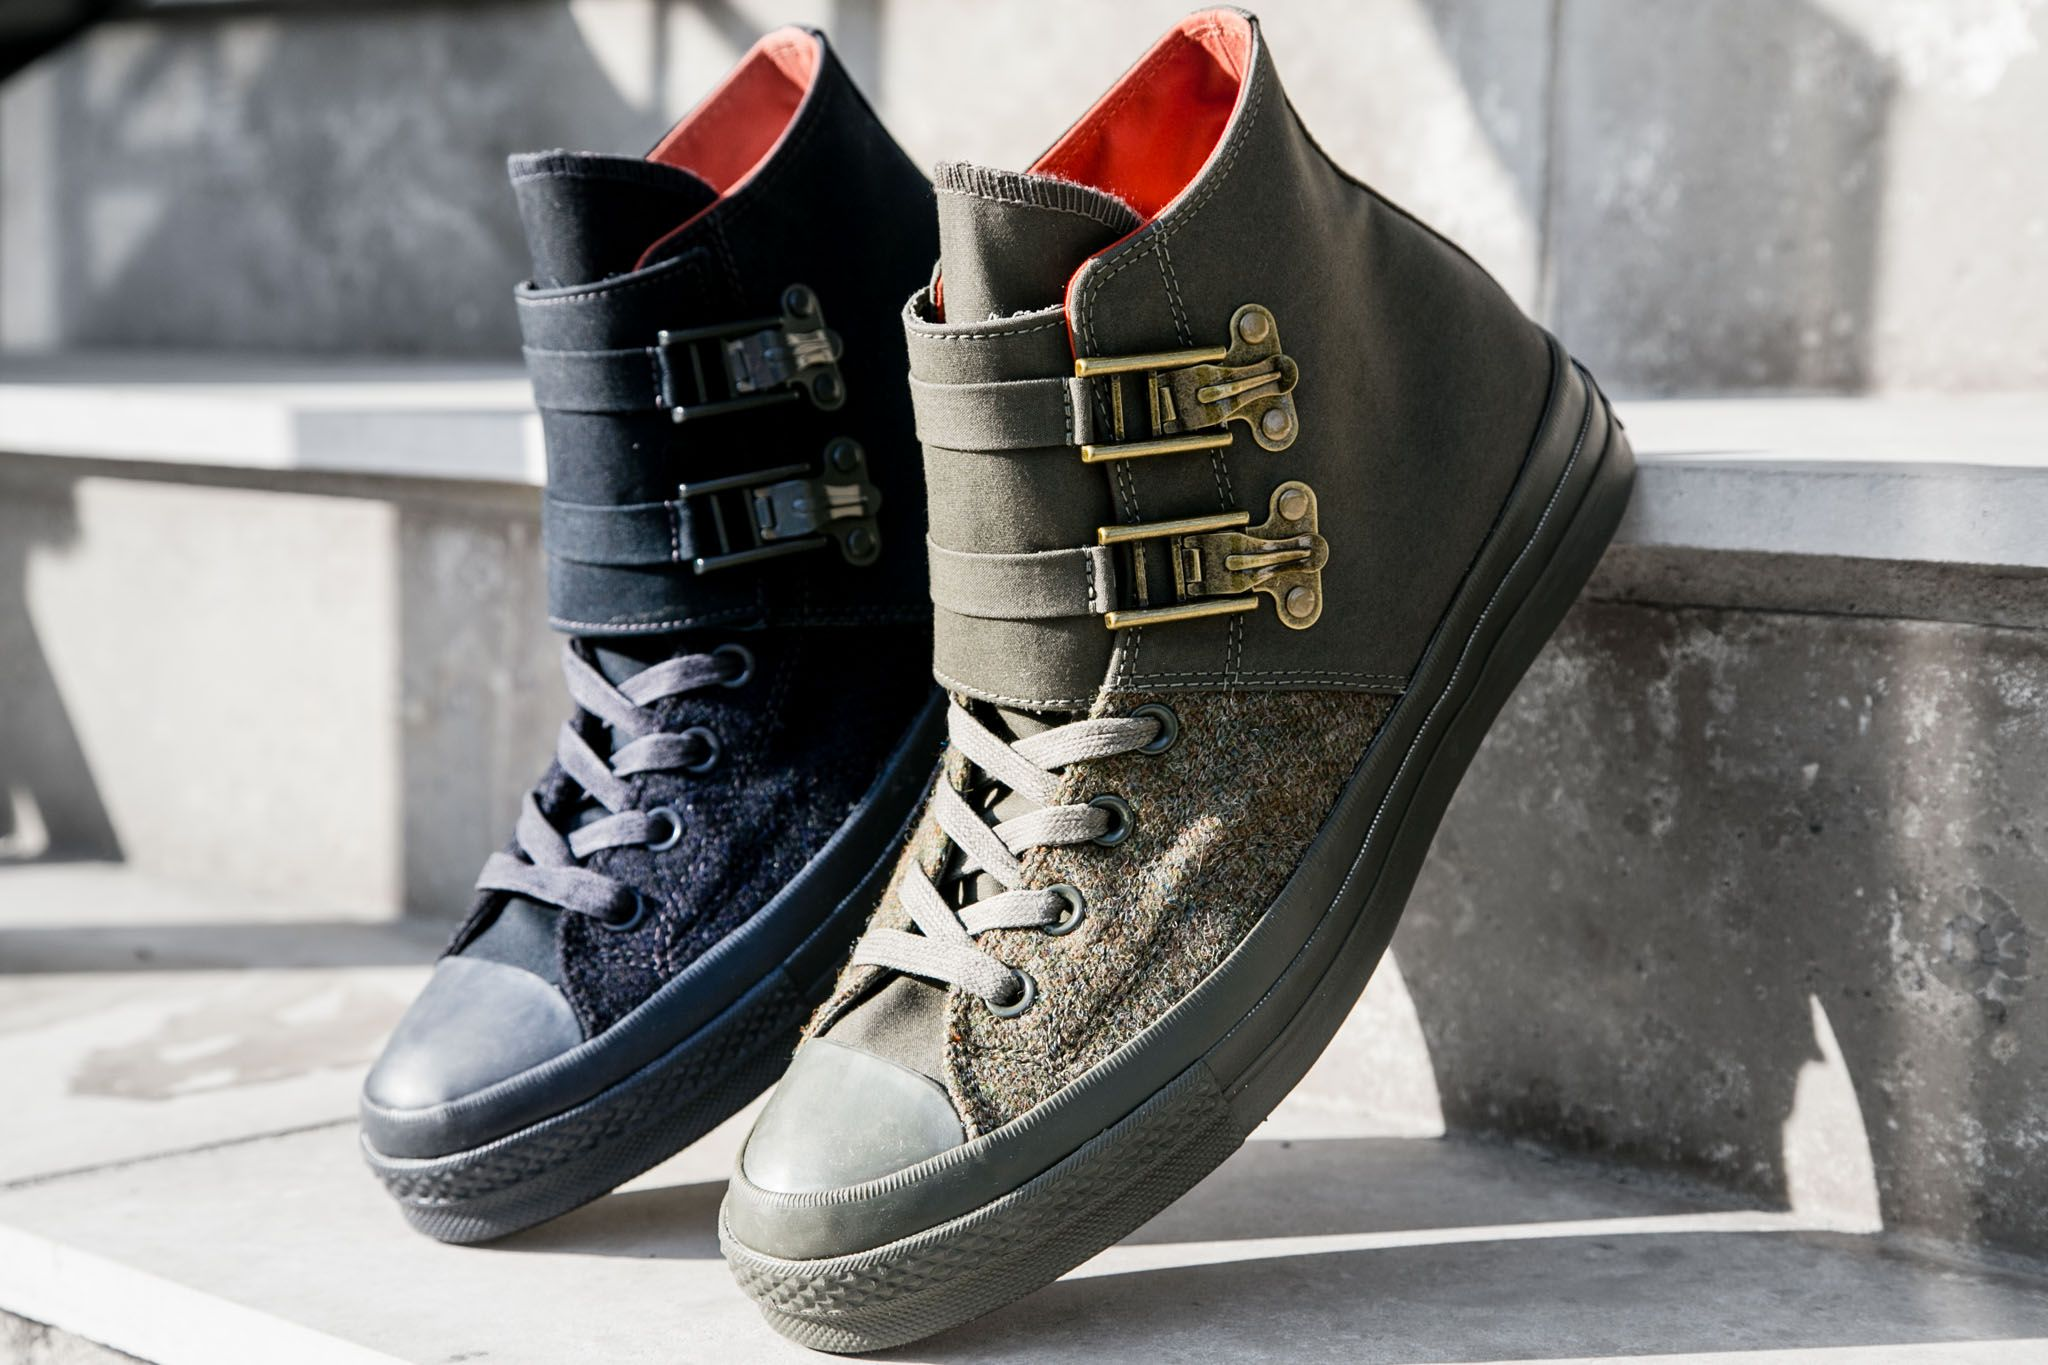 dded61bab8936c Converse x Nigel Cabourn Chuck Taylor All Star 1970 s Pack ...